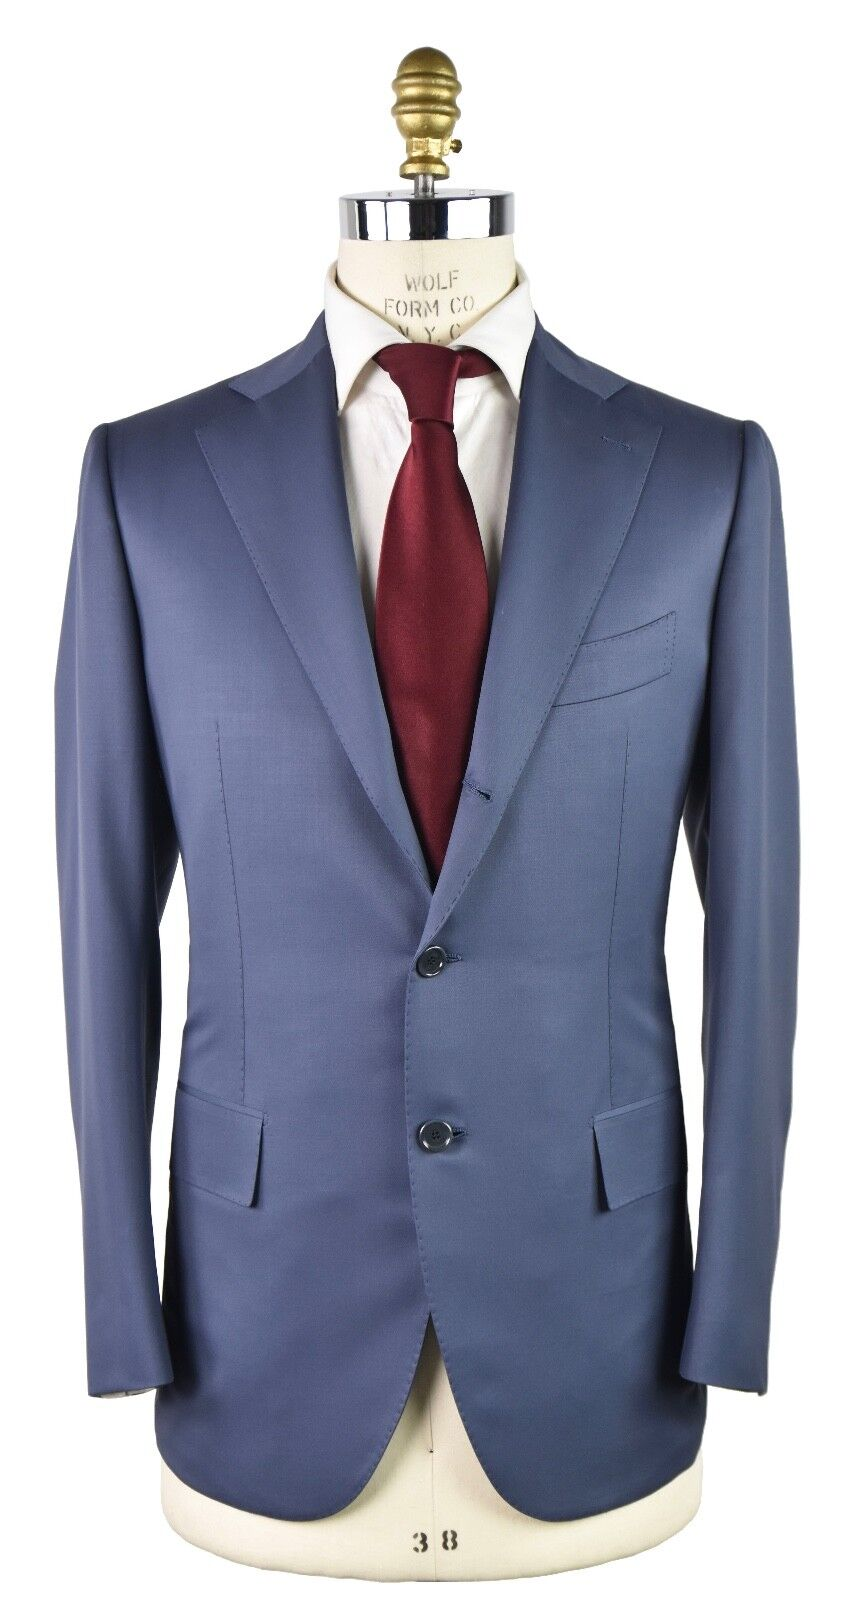 NEW 2018 CESARE ATTOLINI SUIT 100% WOOL 180'S SZ 44 US 54 EU 7R 18AV66